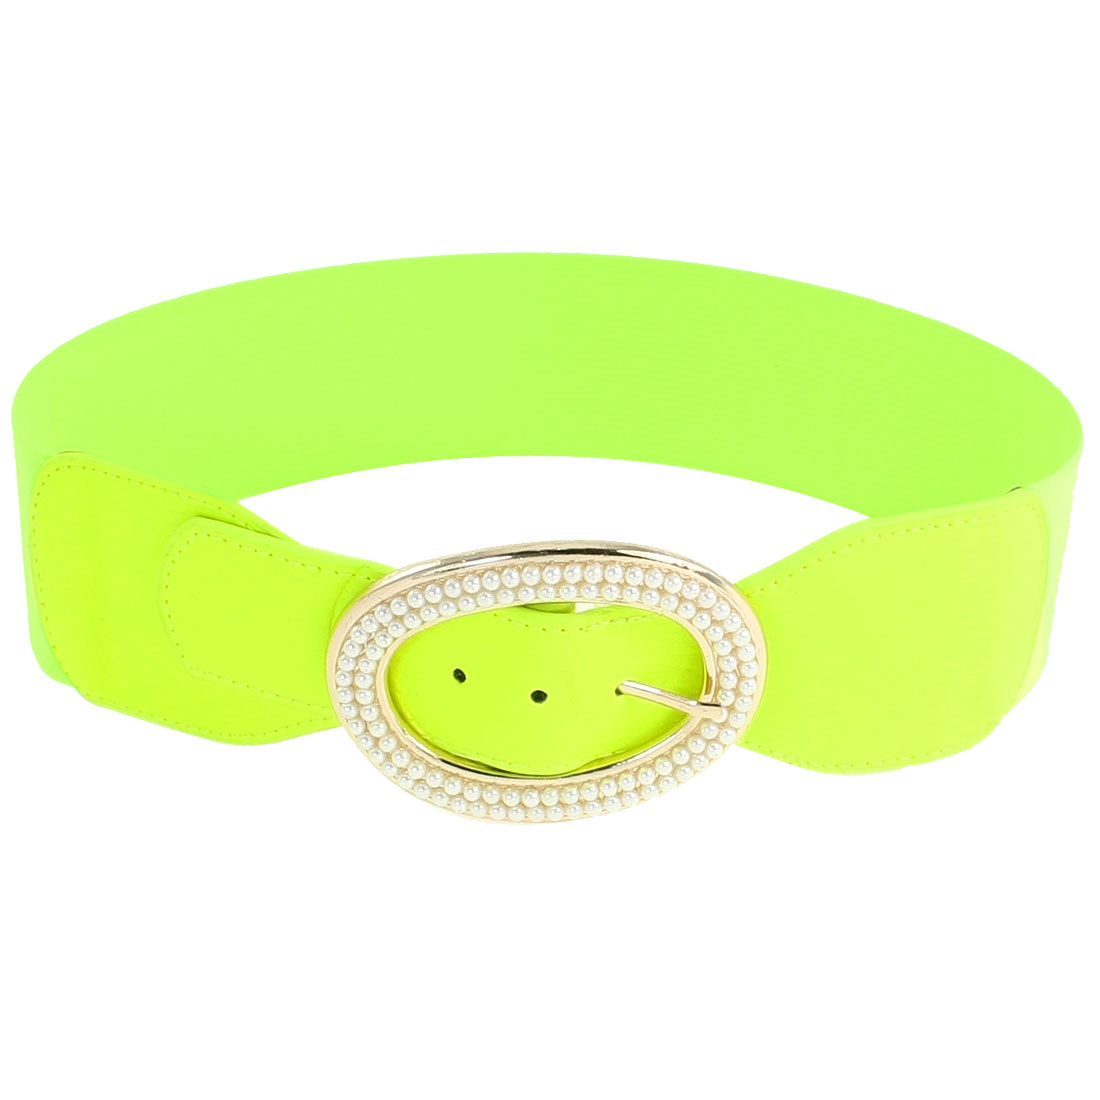 Lady Faux Pearl Inlaid Gold Tone Hollow Out Oval Design Single Pin Buckle Elastic Waist Belt Lime Green